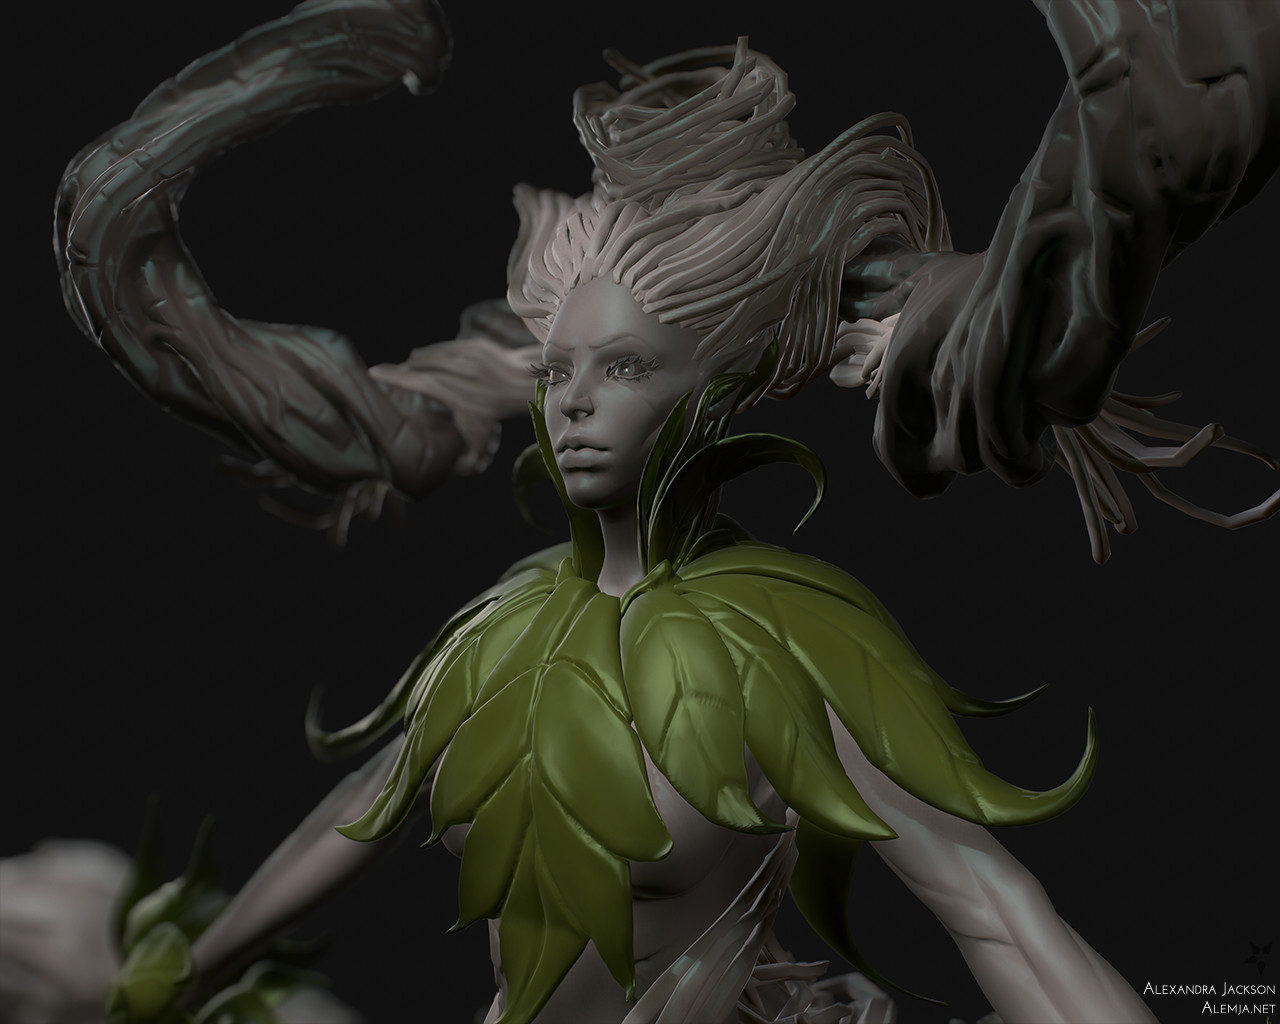 Alexandra jackson woodelemental sculpt closeup